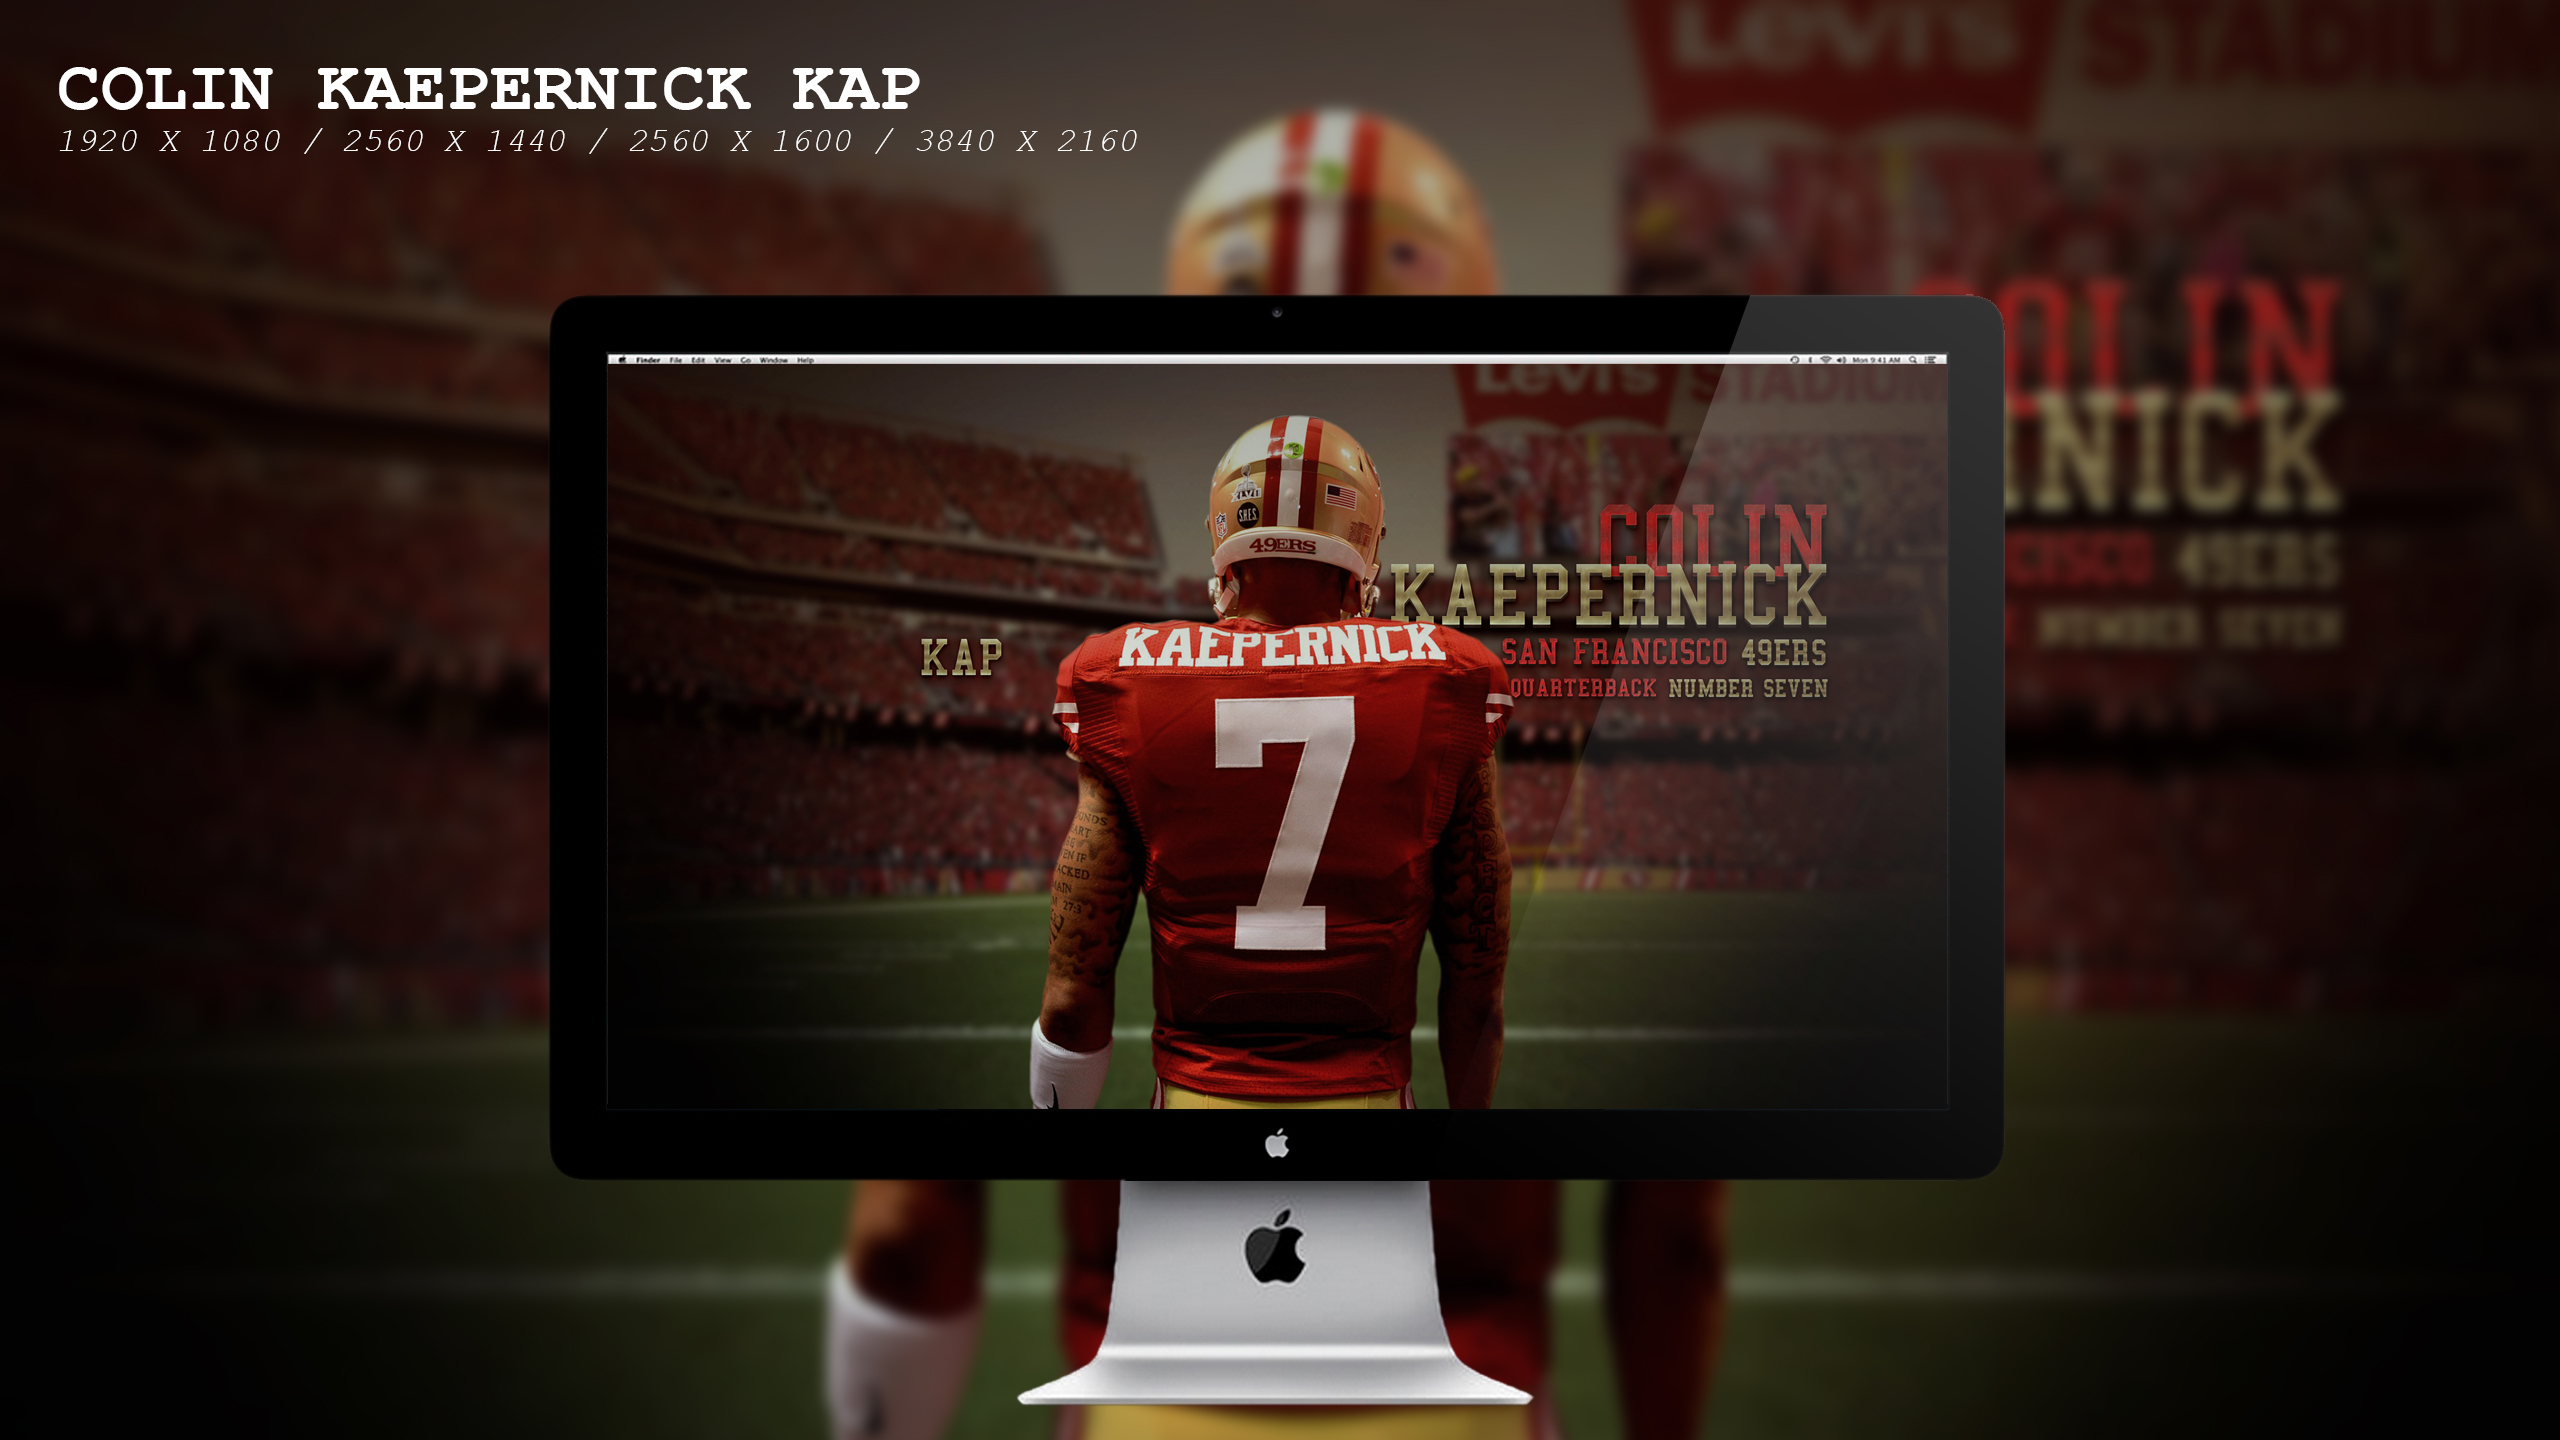 Colin Kaepernick Kap Wallpaper HD by BeAware8 2560x1440